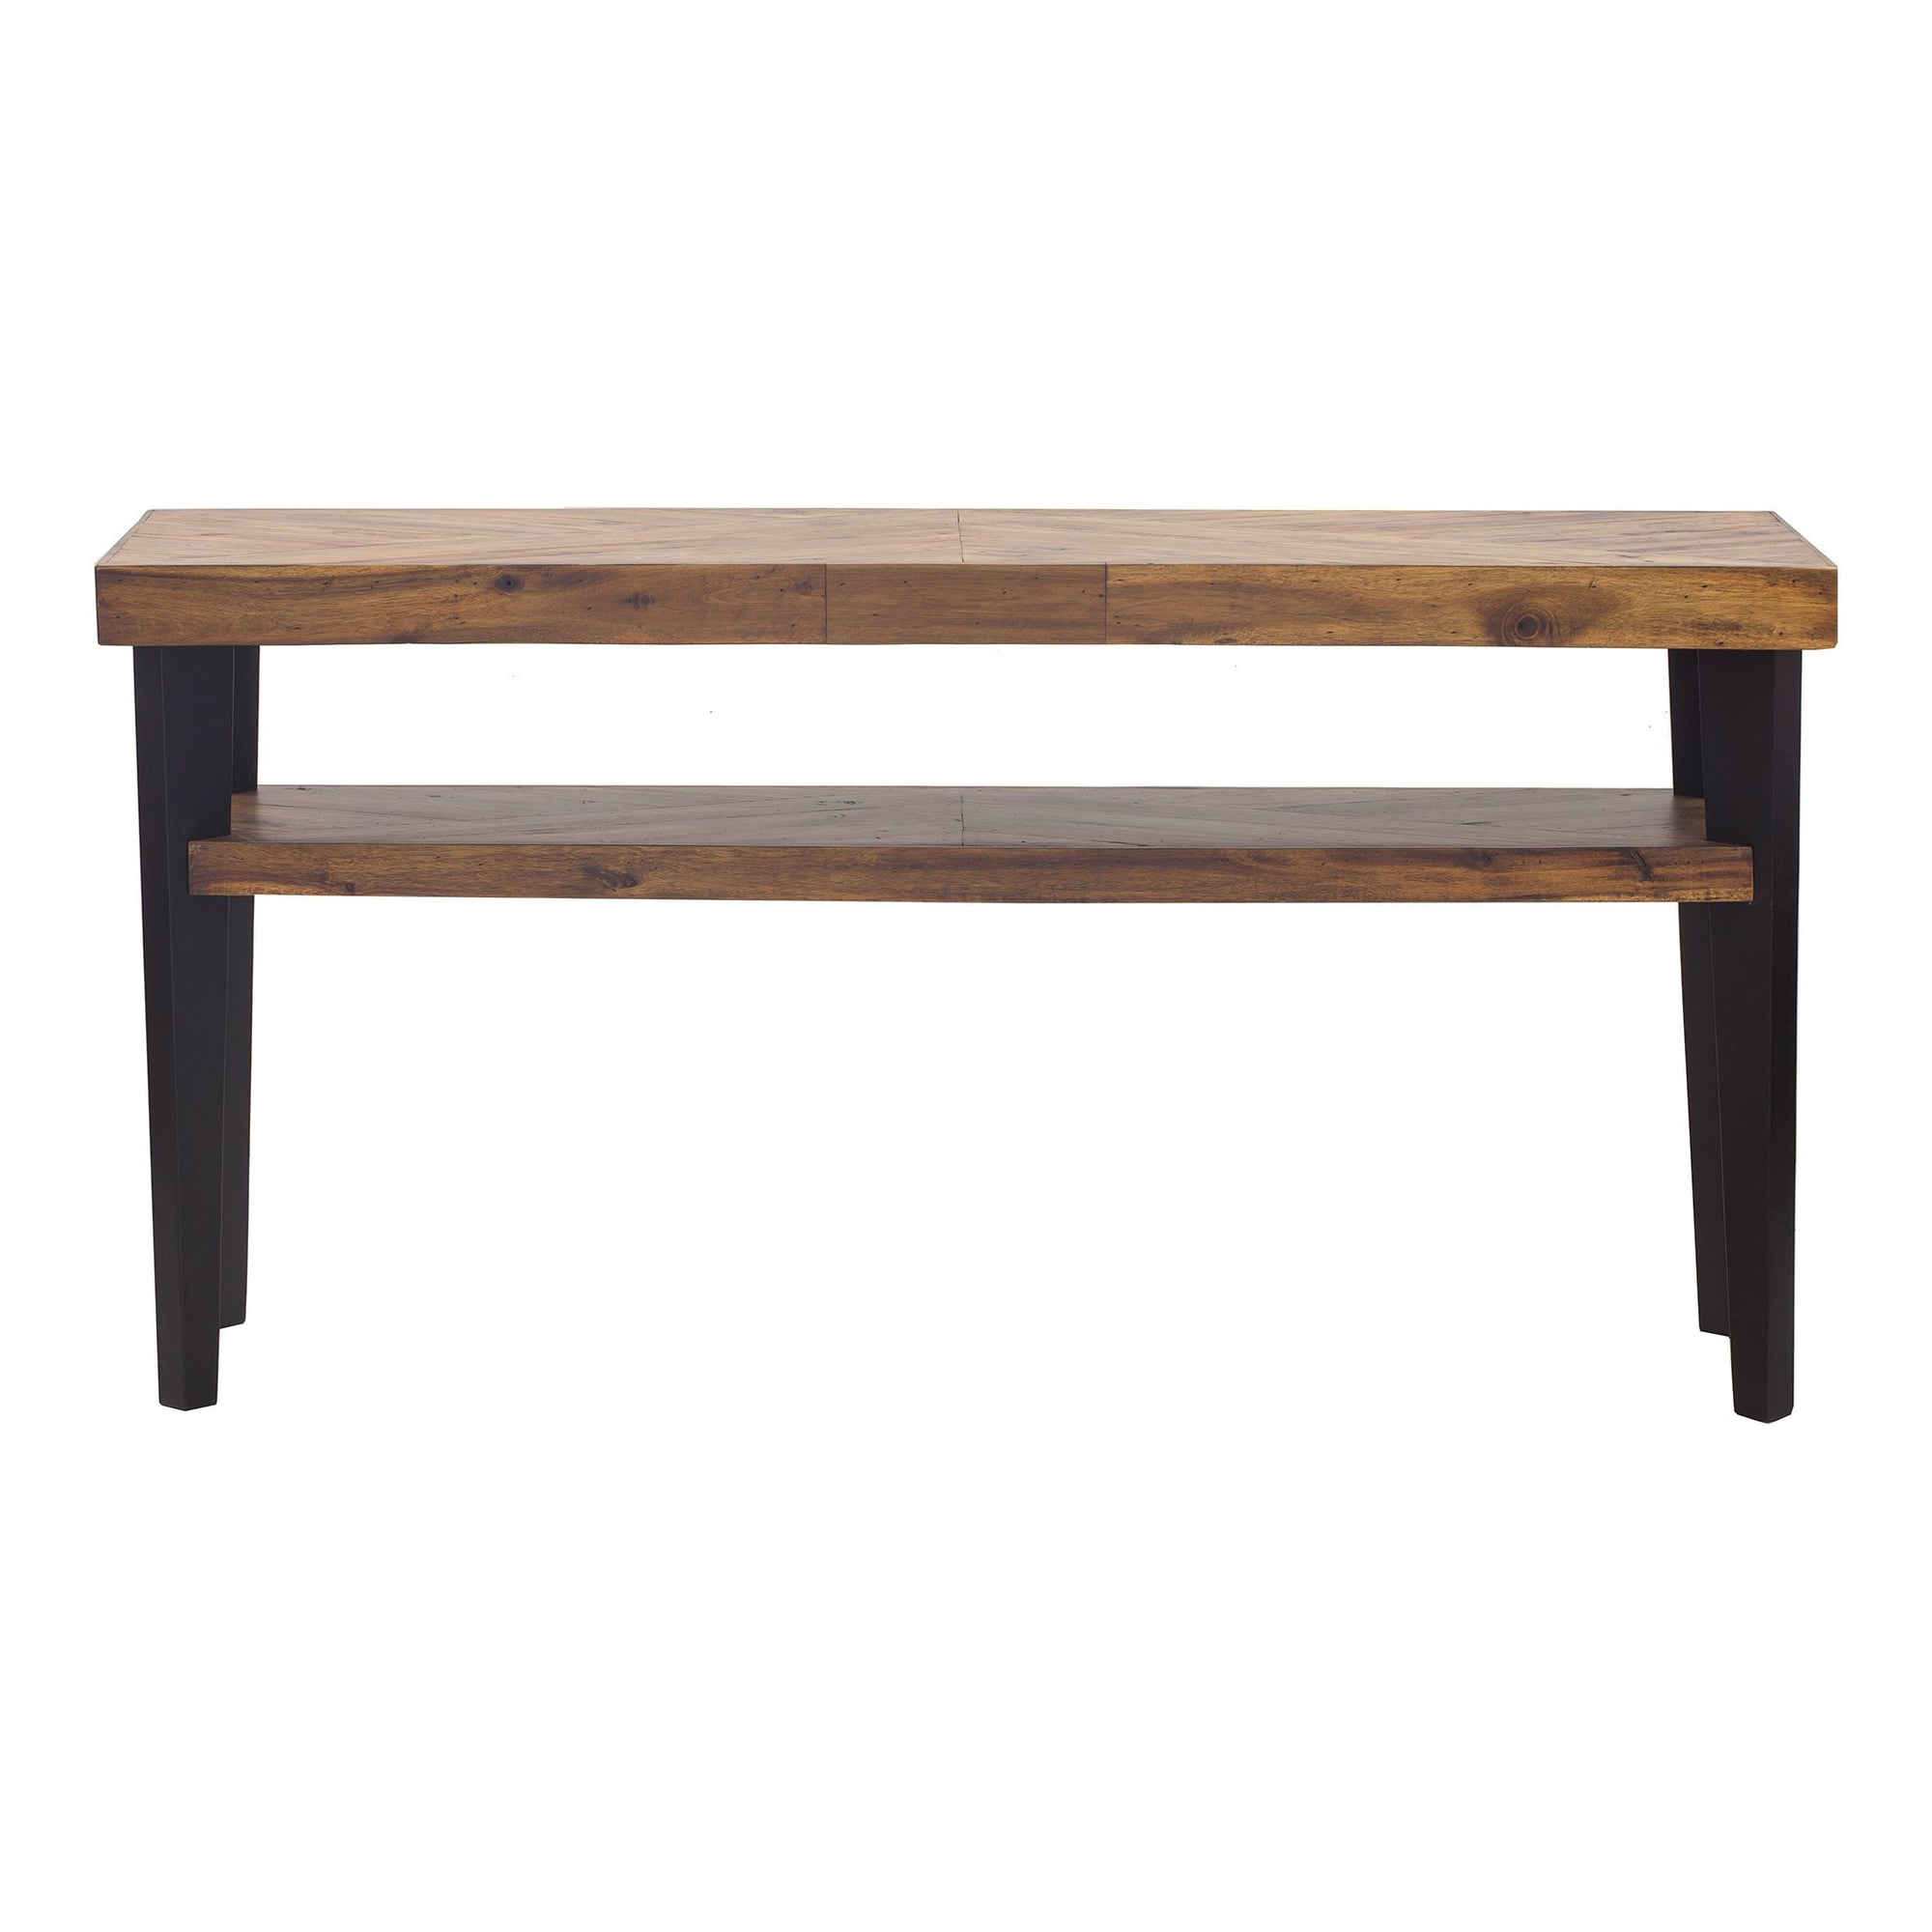 MOES-PARQ CONSOLE TABLE-Console & Sofa Tables-MODTEMPO